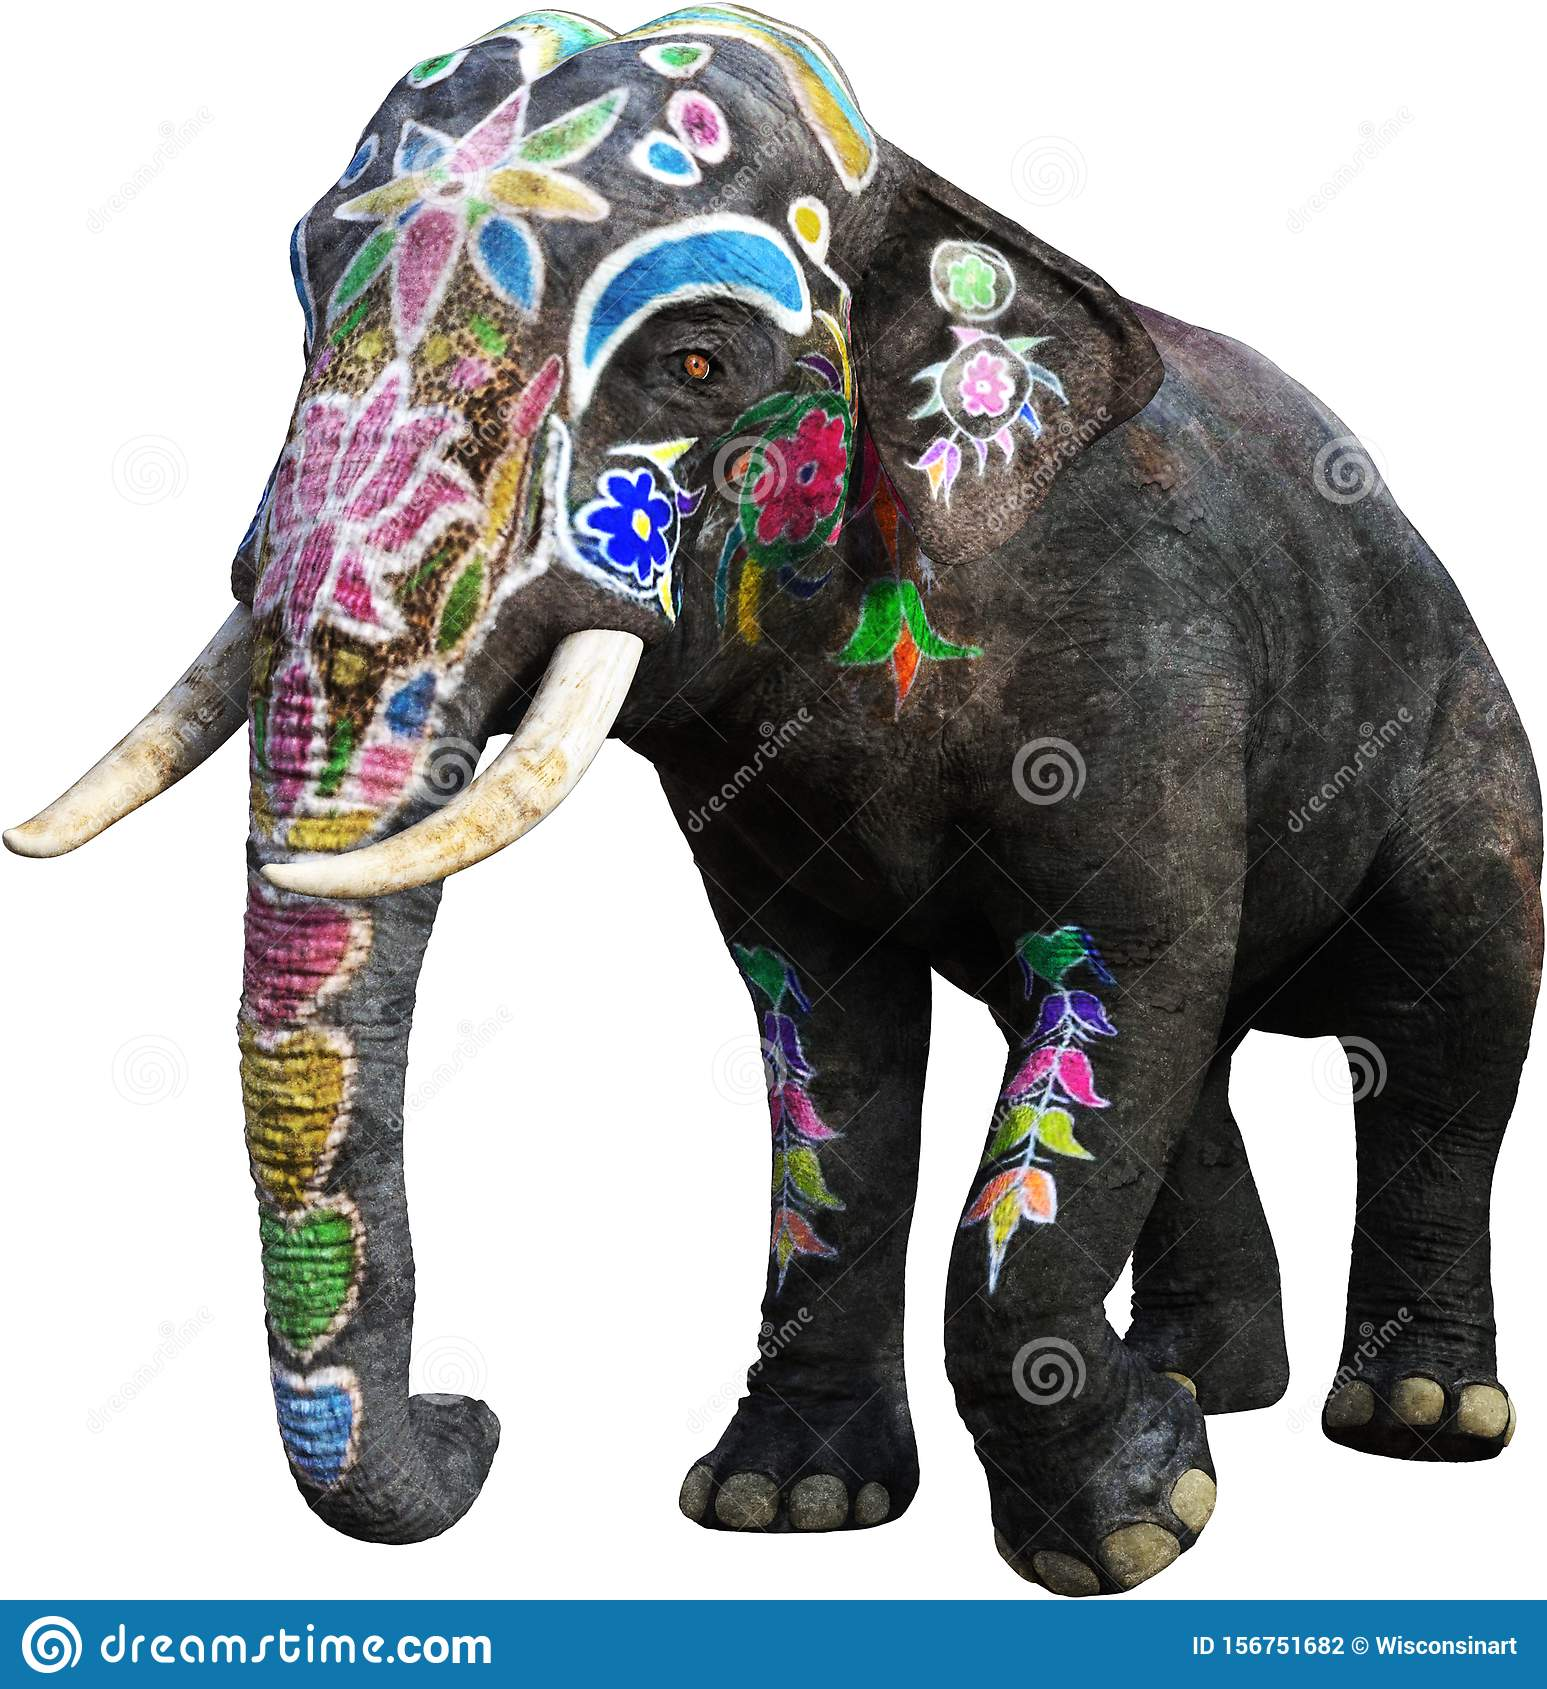 Painted India Elephant India Isolated Stock Photo Illustration Of File Painted 156751682 Elephant print illustration, india elephant, indian elephant pattern background, mammal, animals, carnivoran png. https www dreamstime com painted india elephant isolated illustration indian animal asia white png file available image156751682